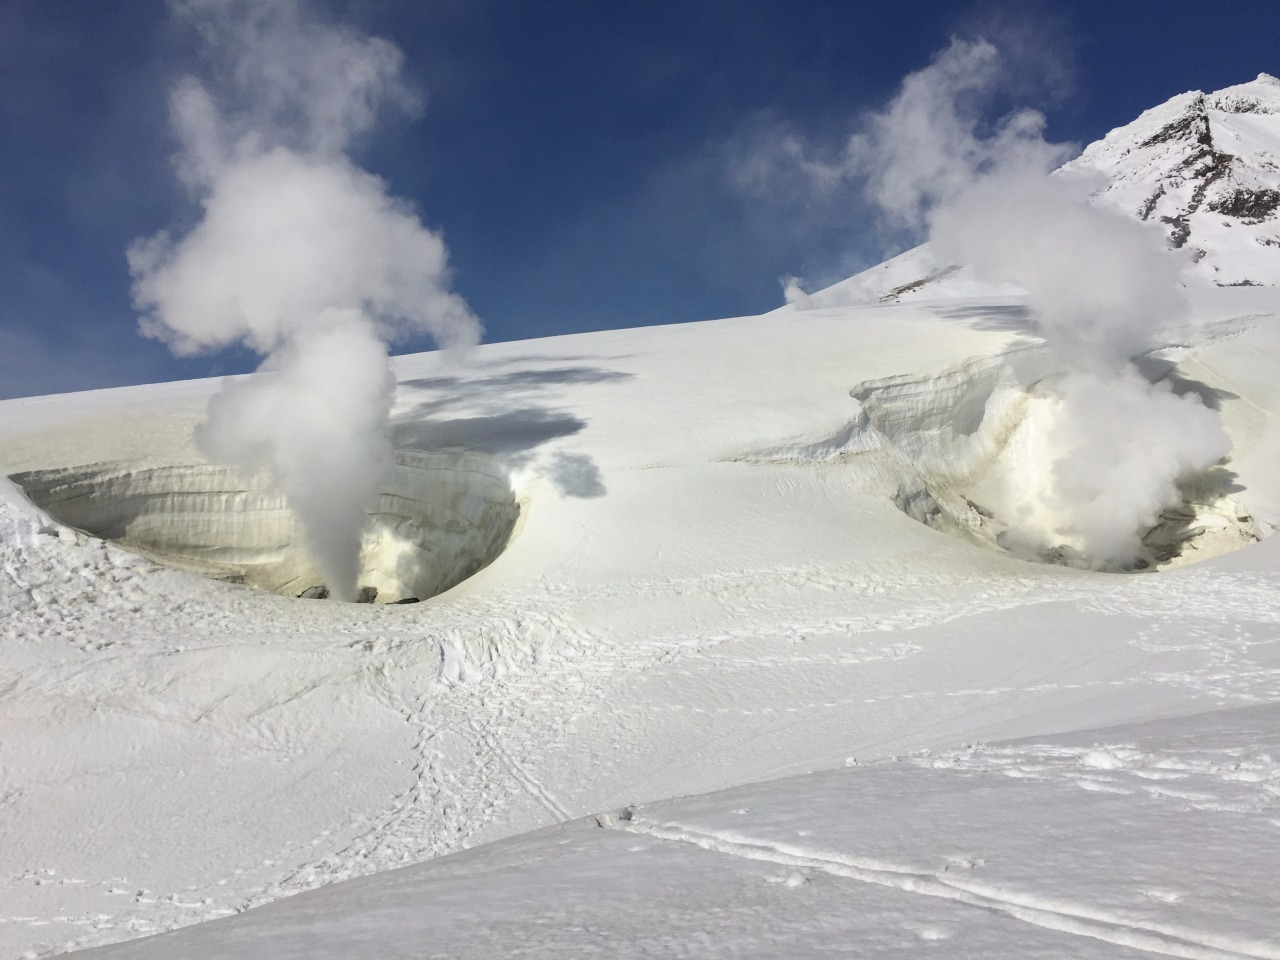 Geothermal vents at the top of Asahidake, inside Daisetsuzan National Park